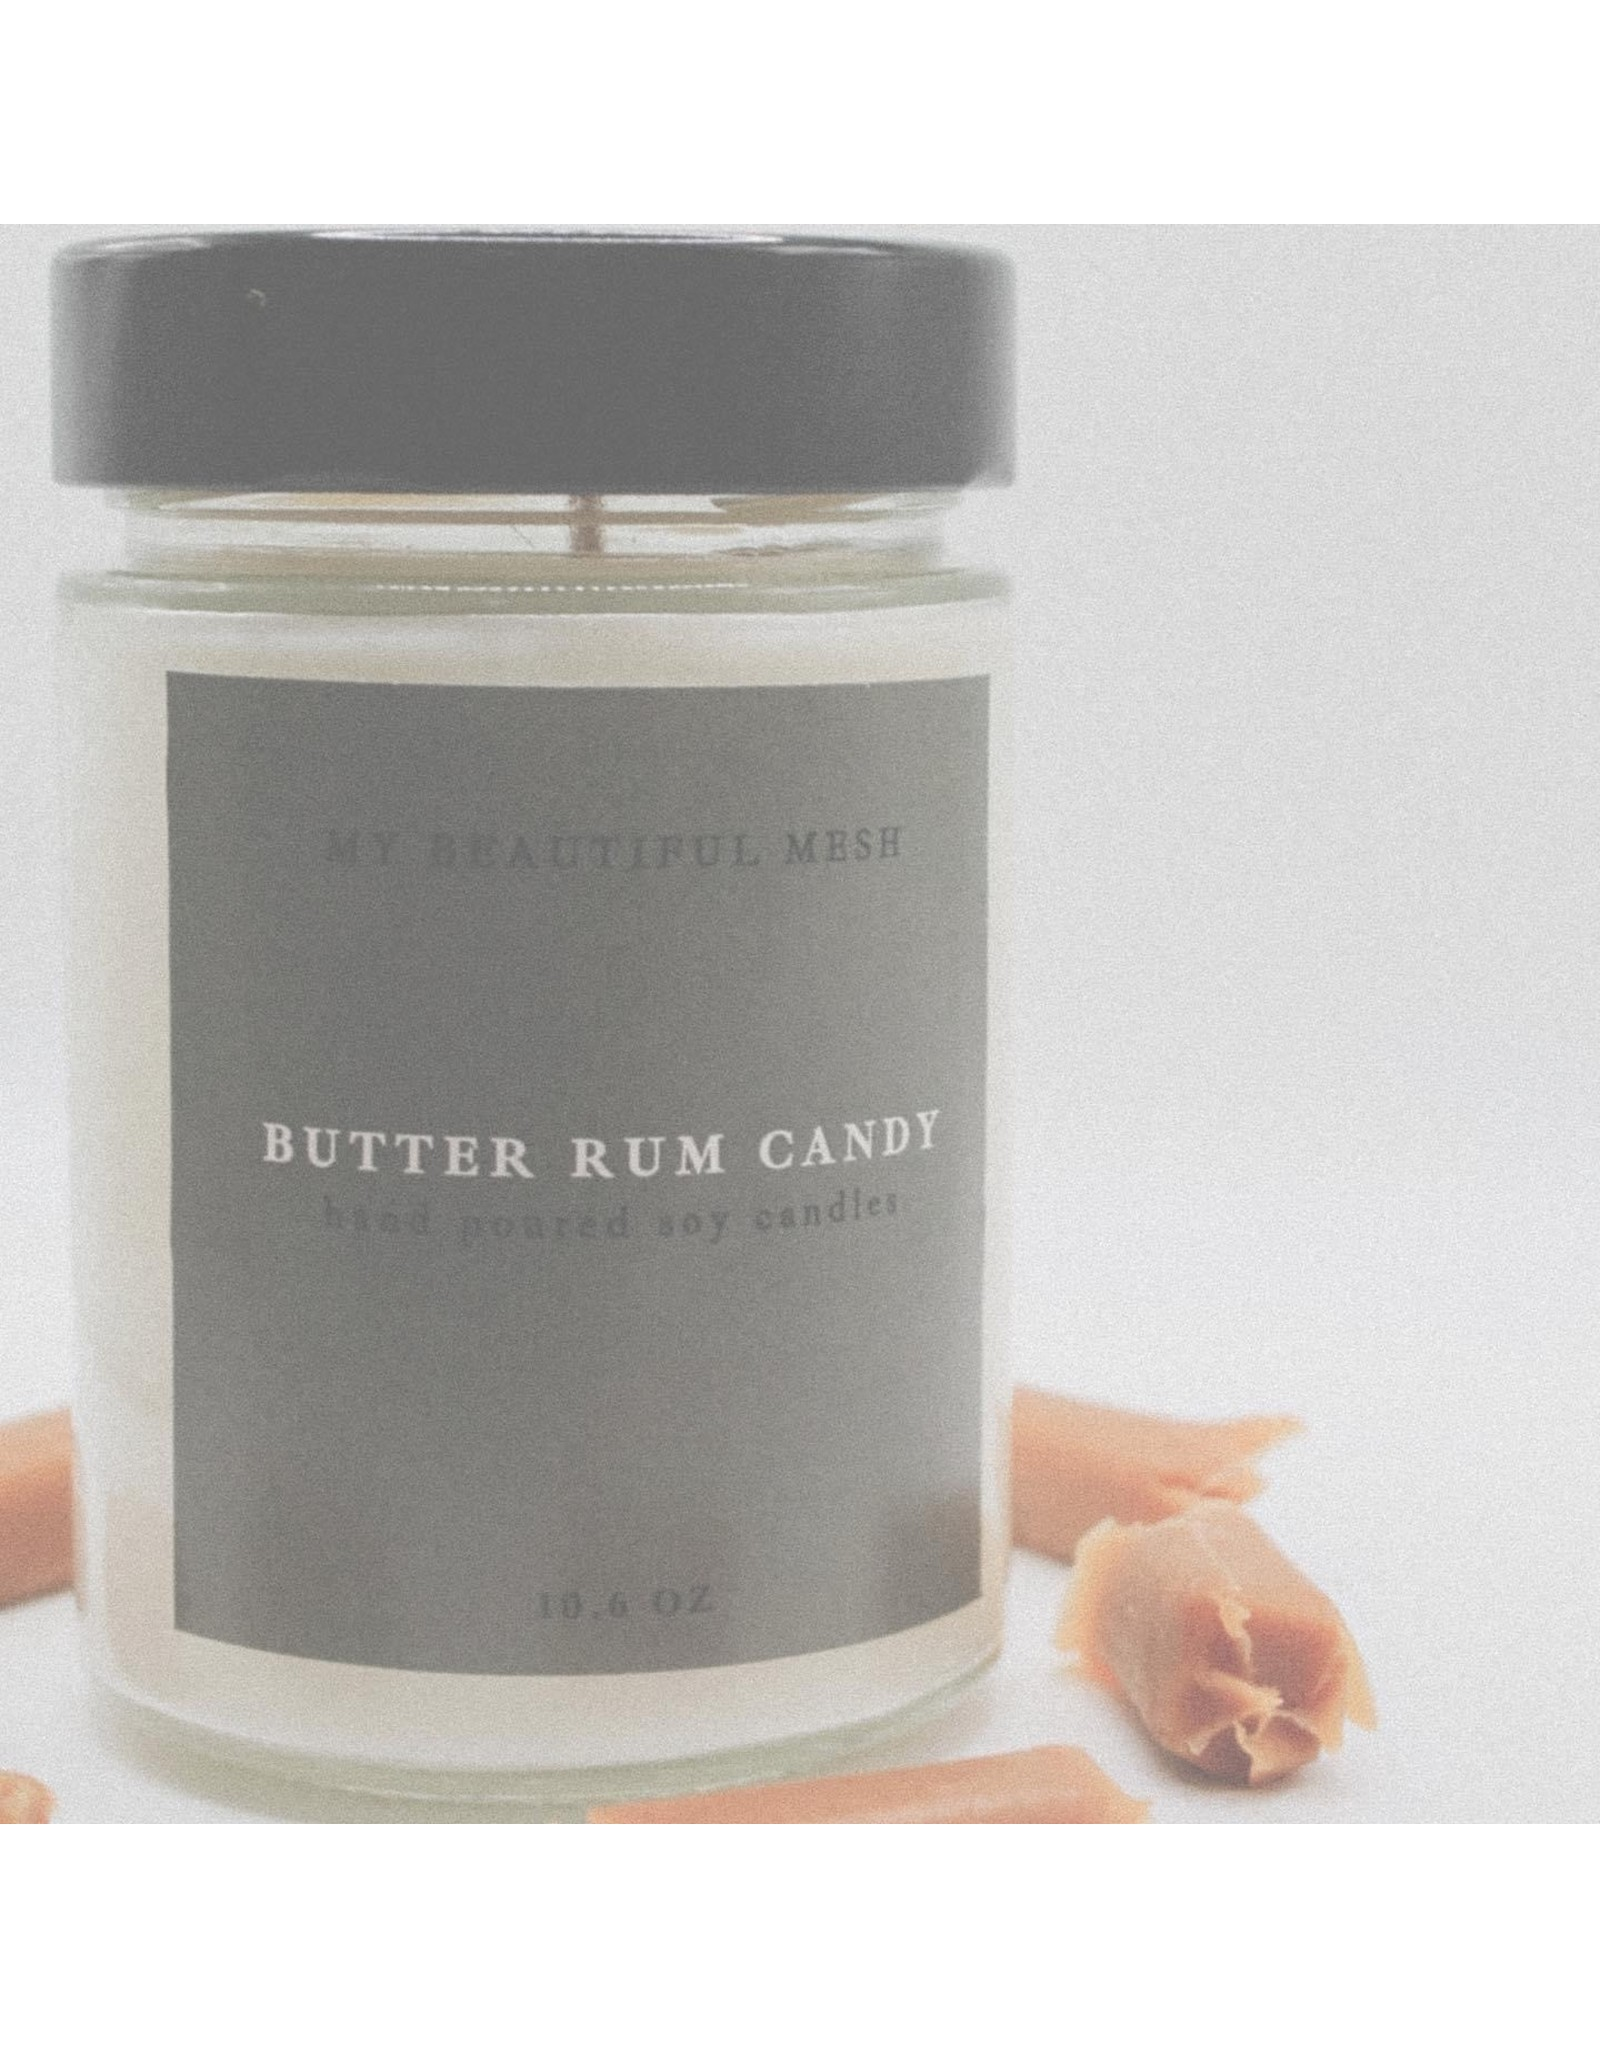 My Beautiful Mesh Butter Rum Candy Candle, 10.6oz